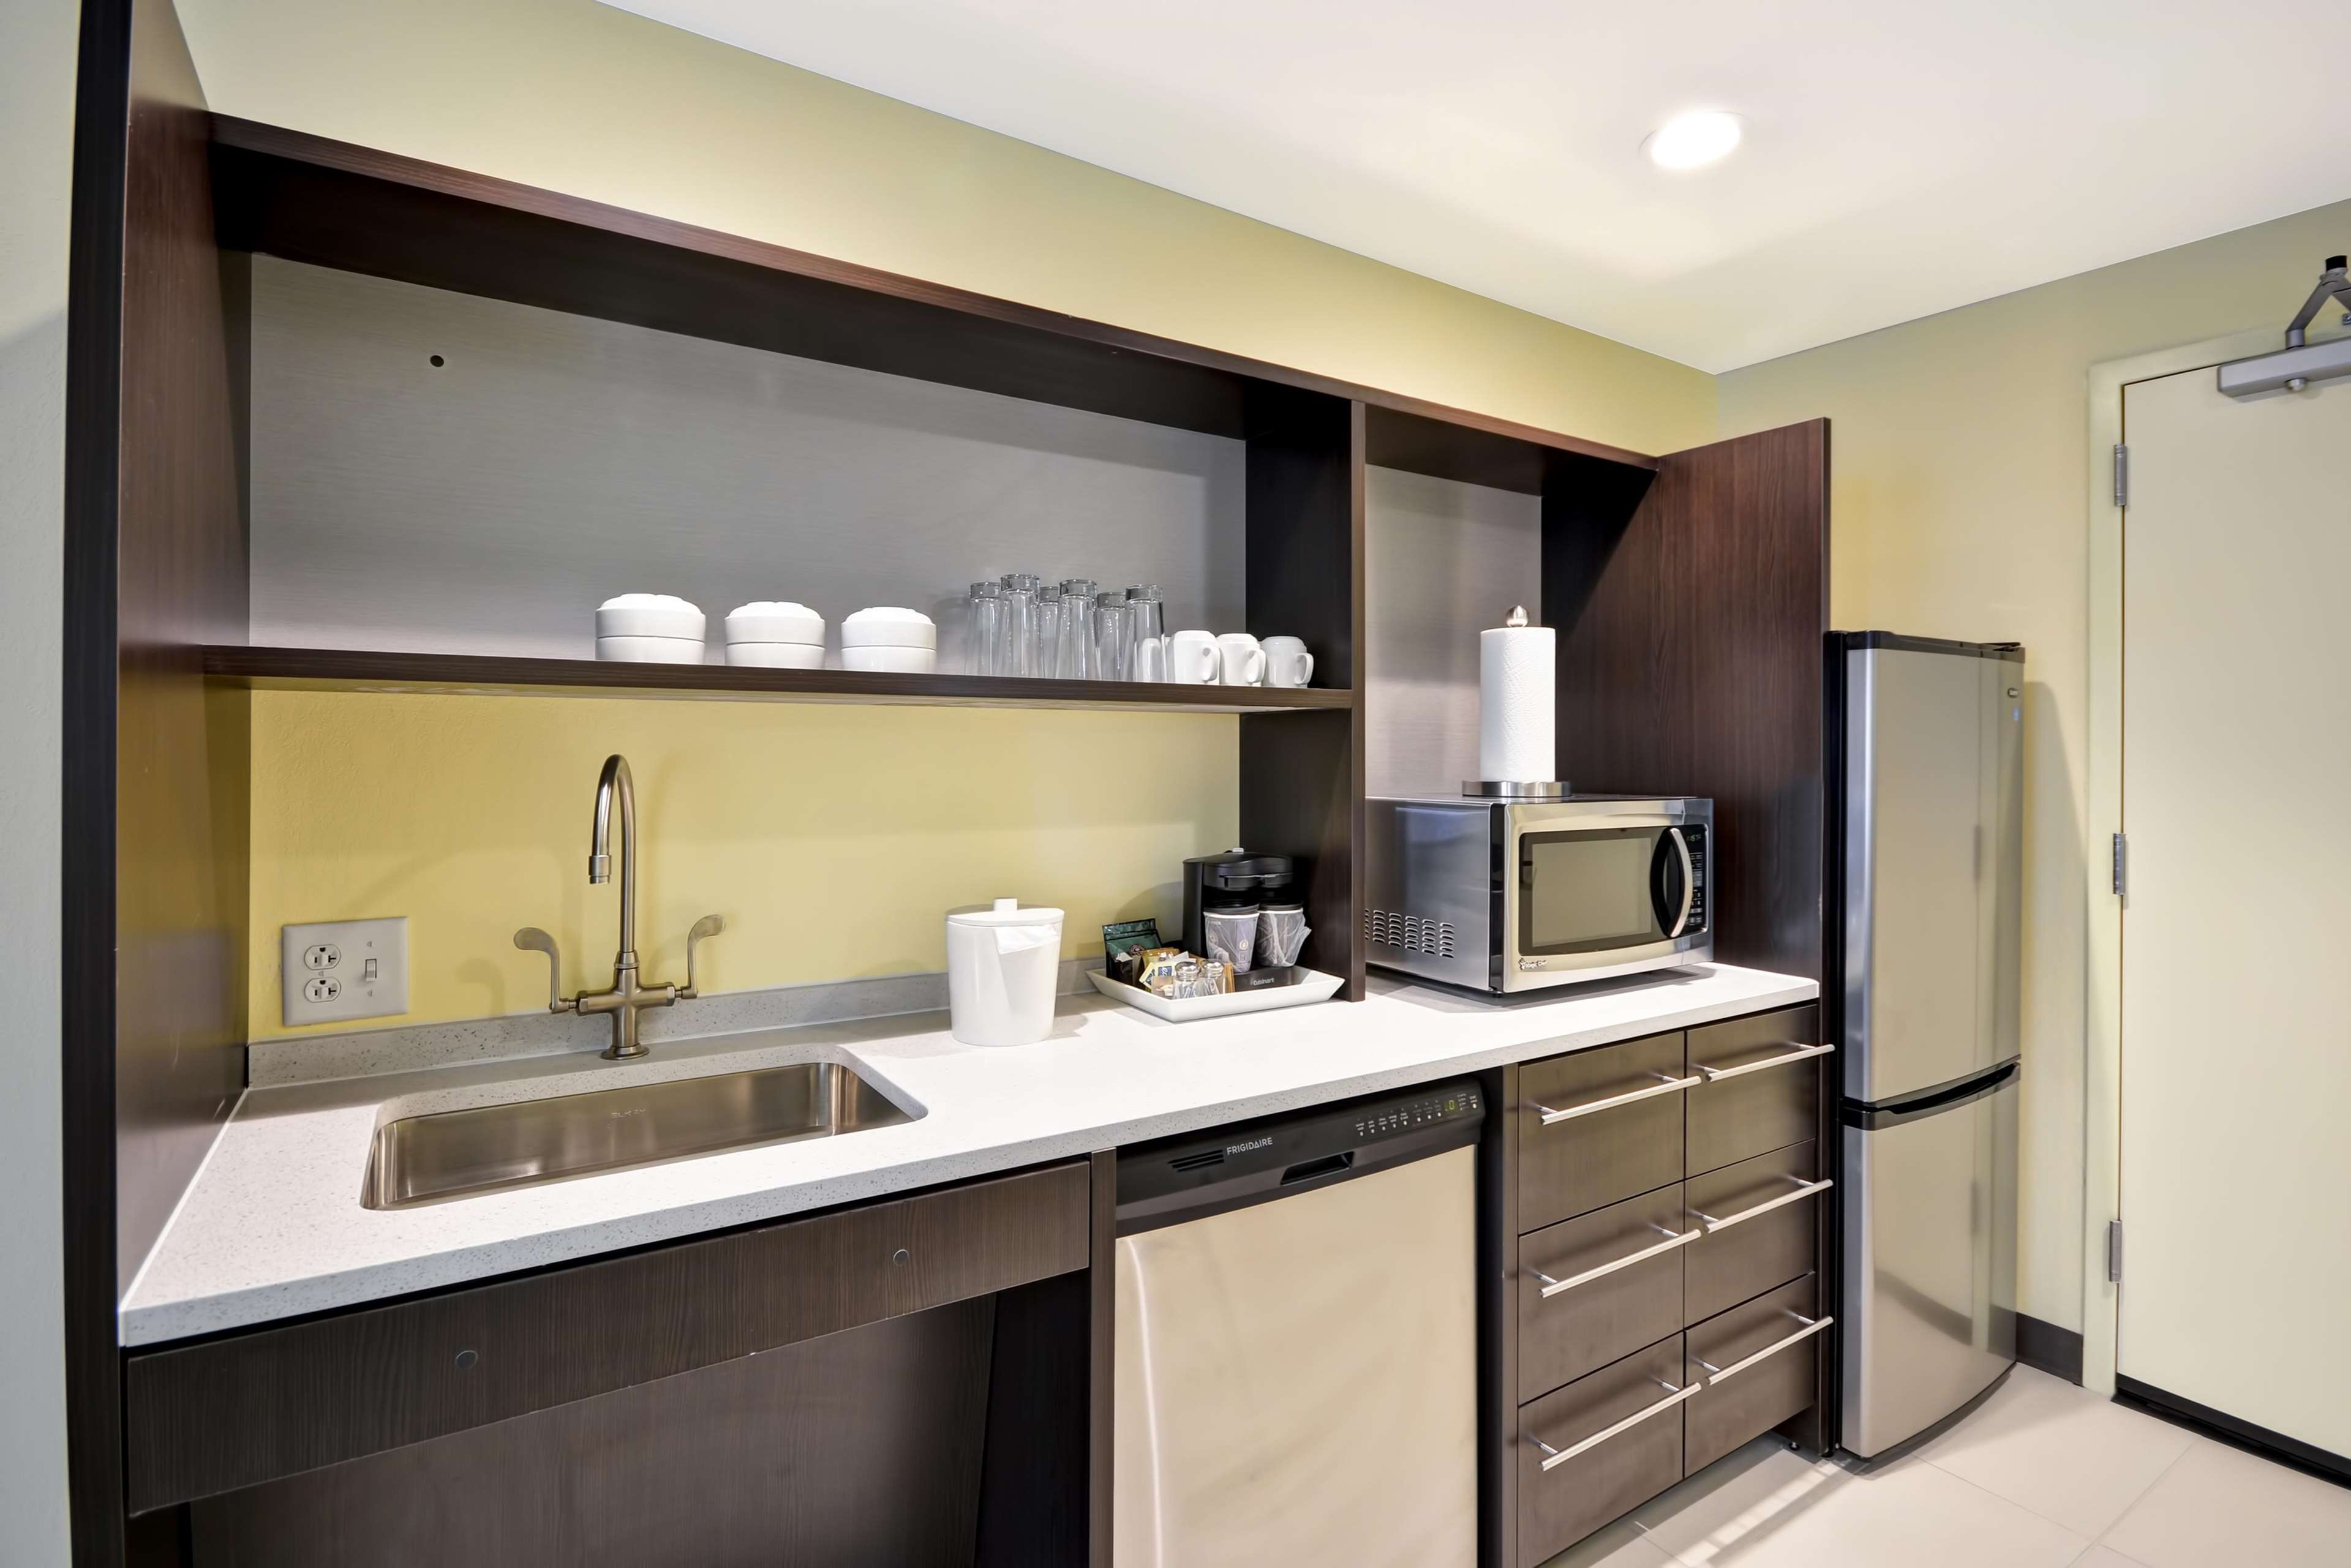 Home2 Suites By Hilton Maumee Toledo image 20